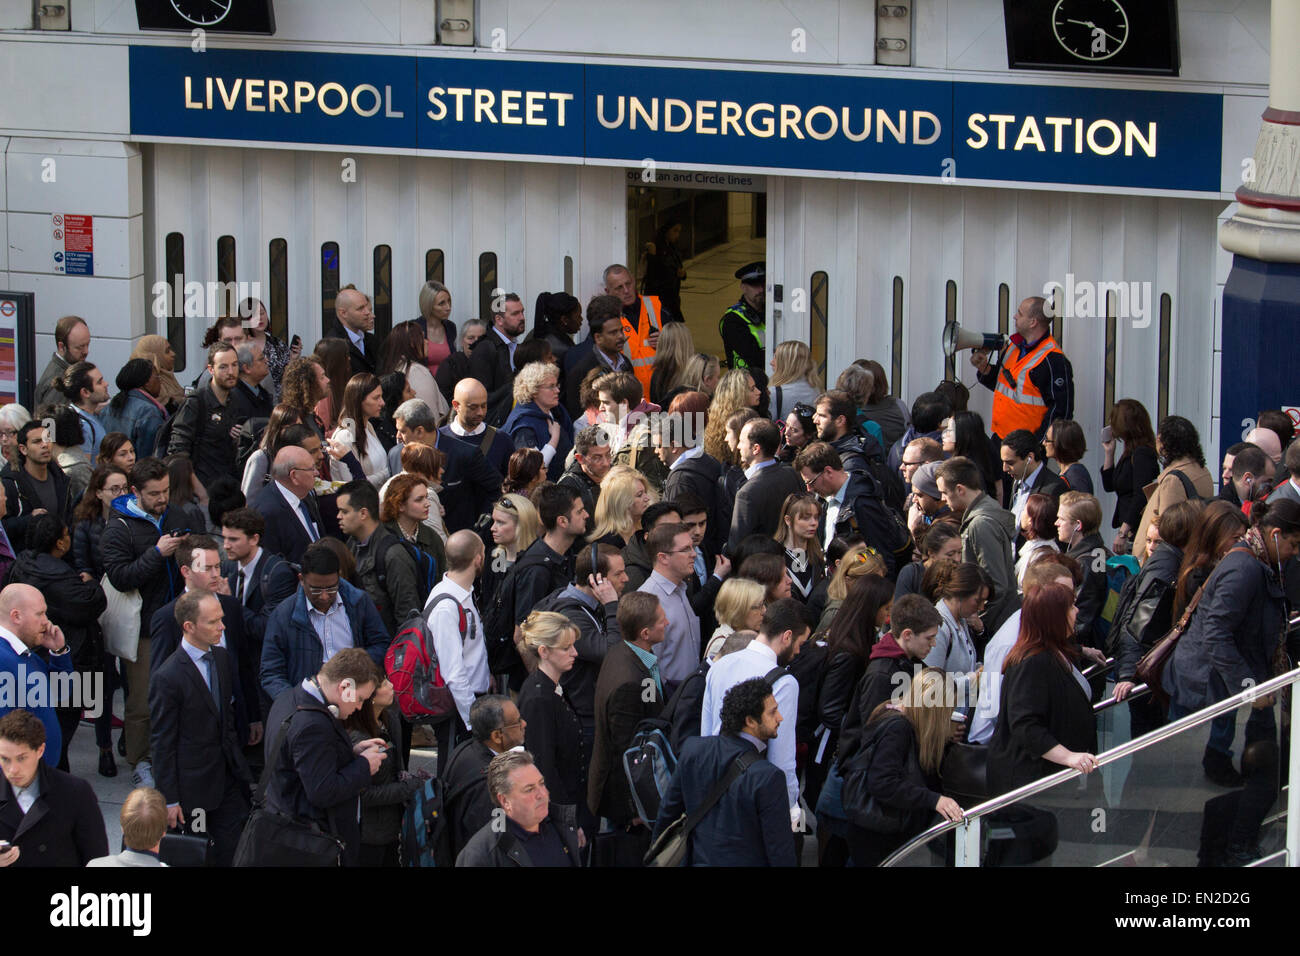 crowd control on London Underground, after Liverpool street tube station is closed during rush hour causing delays - Stock Image